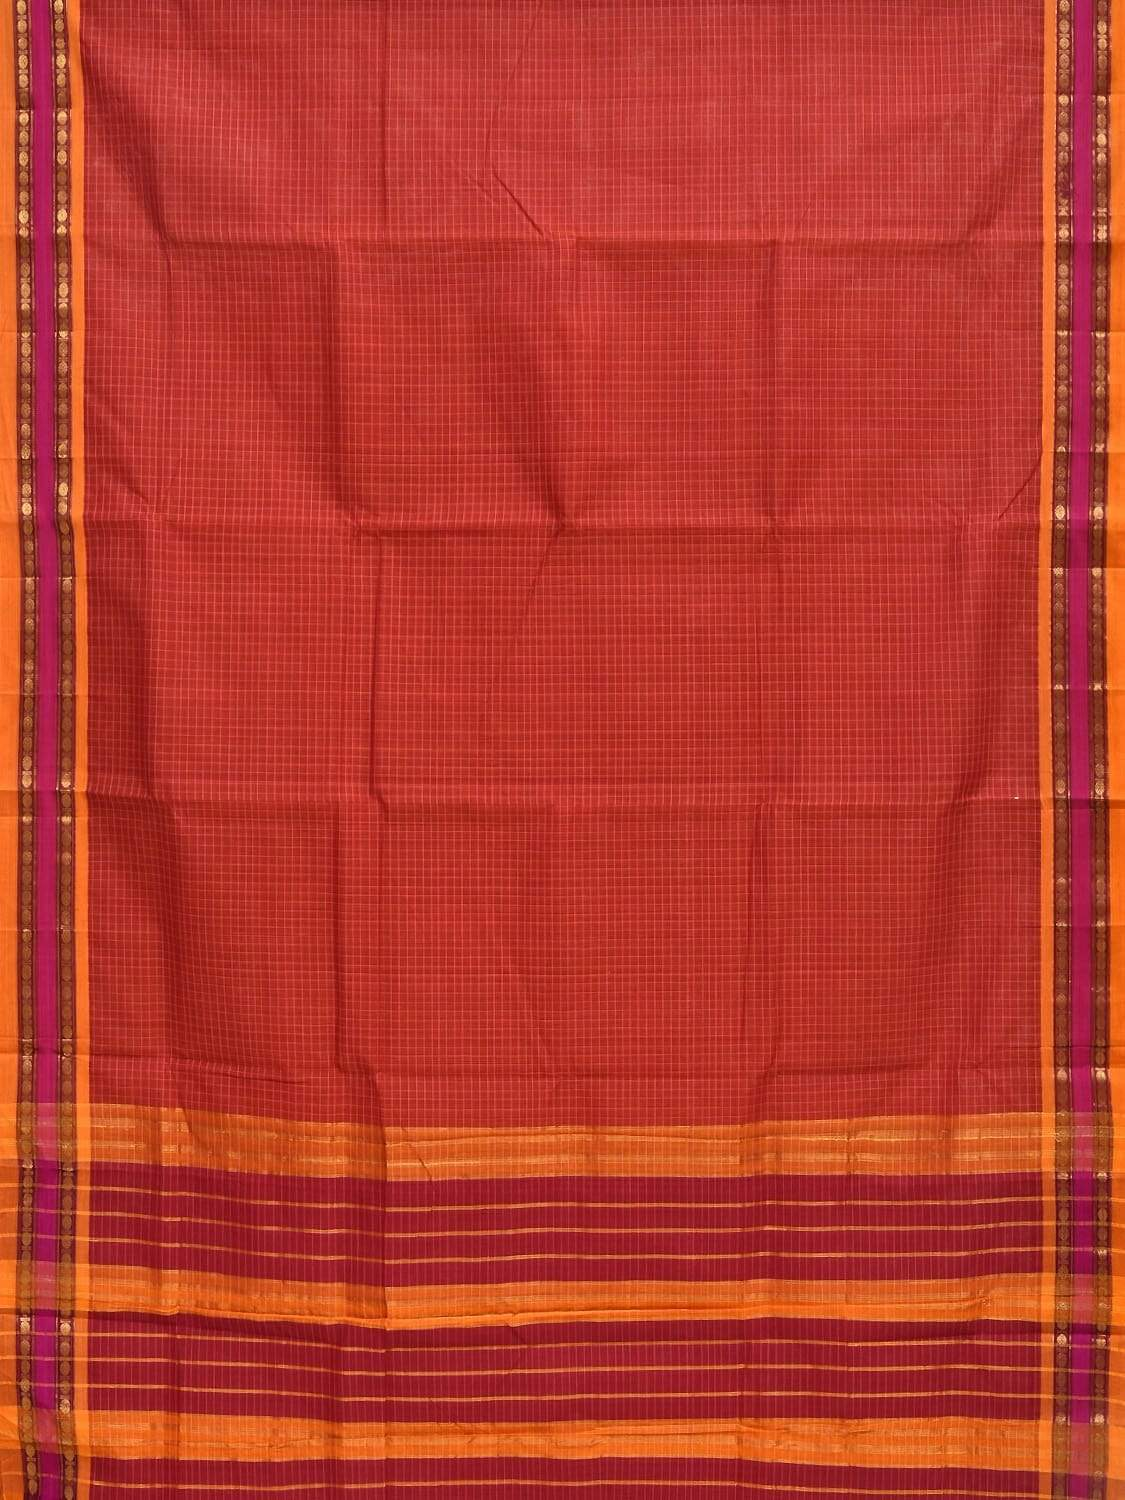 Rust Narayanpet Cotton Handloom Saree with Checks Design No Blouse np0226